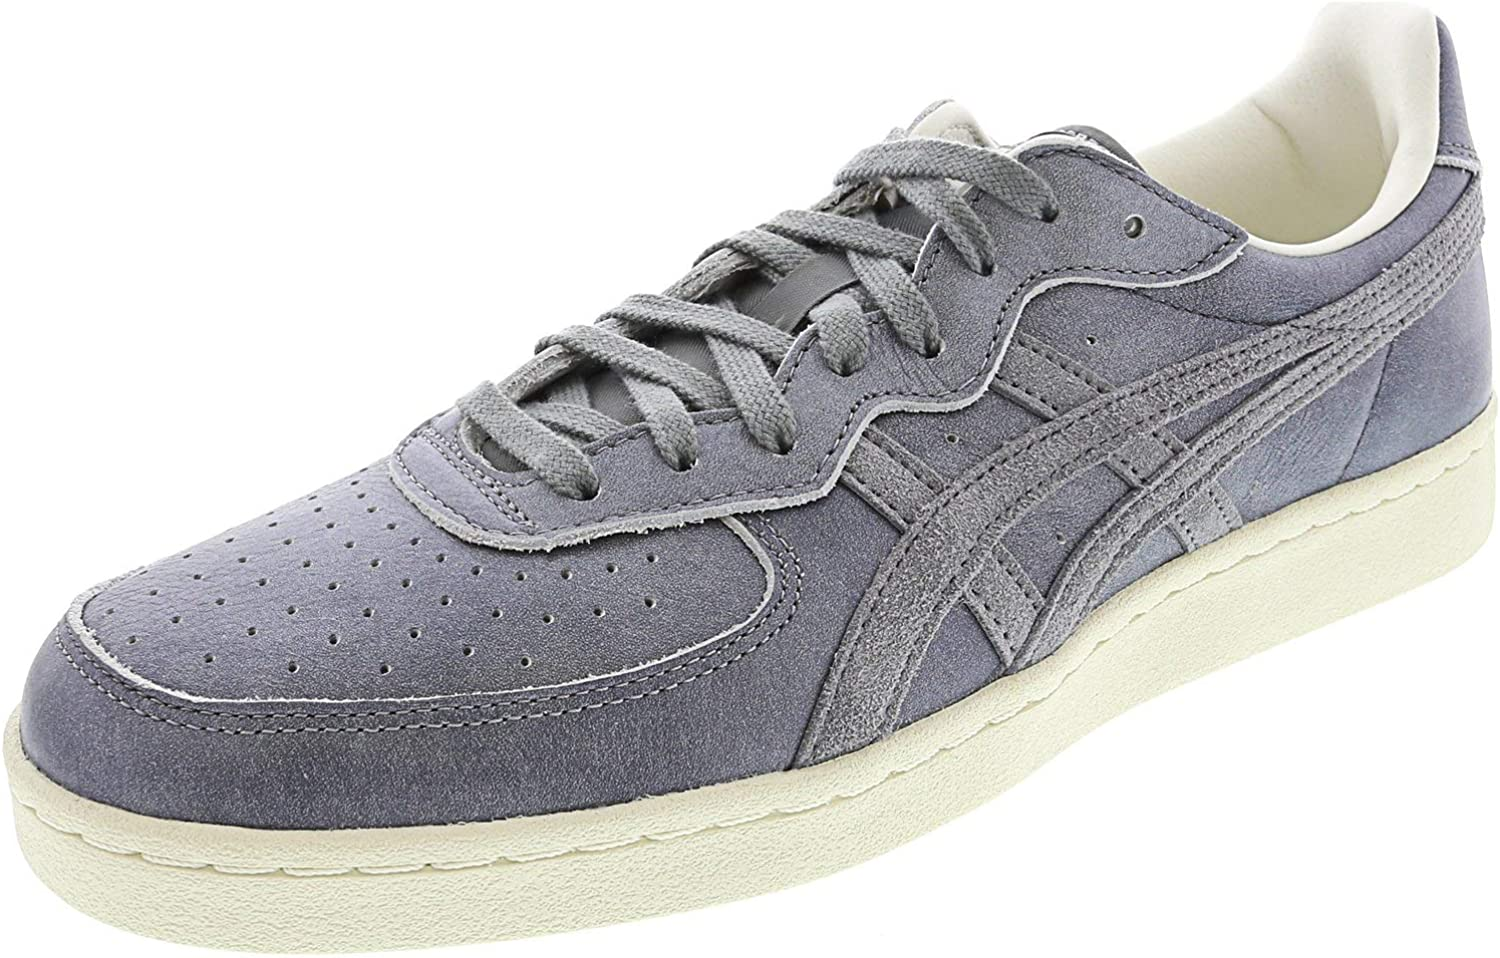 ASICS Onitsuka Tiger GSM EX Casual shoes